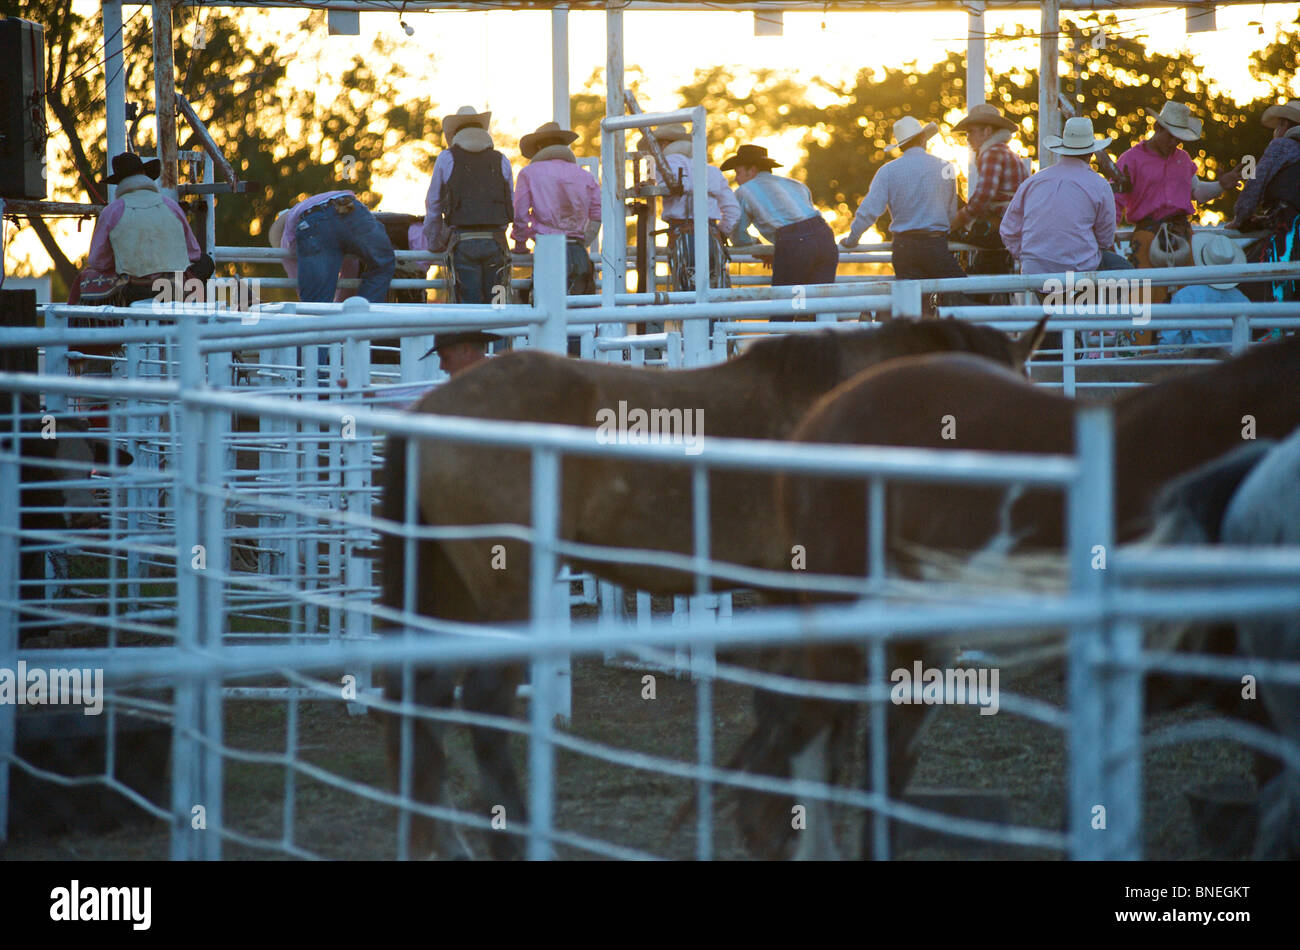 Cowboy members of PRCA at rodeo event in Bridgeport  Texas, USA - Stock Image